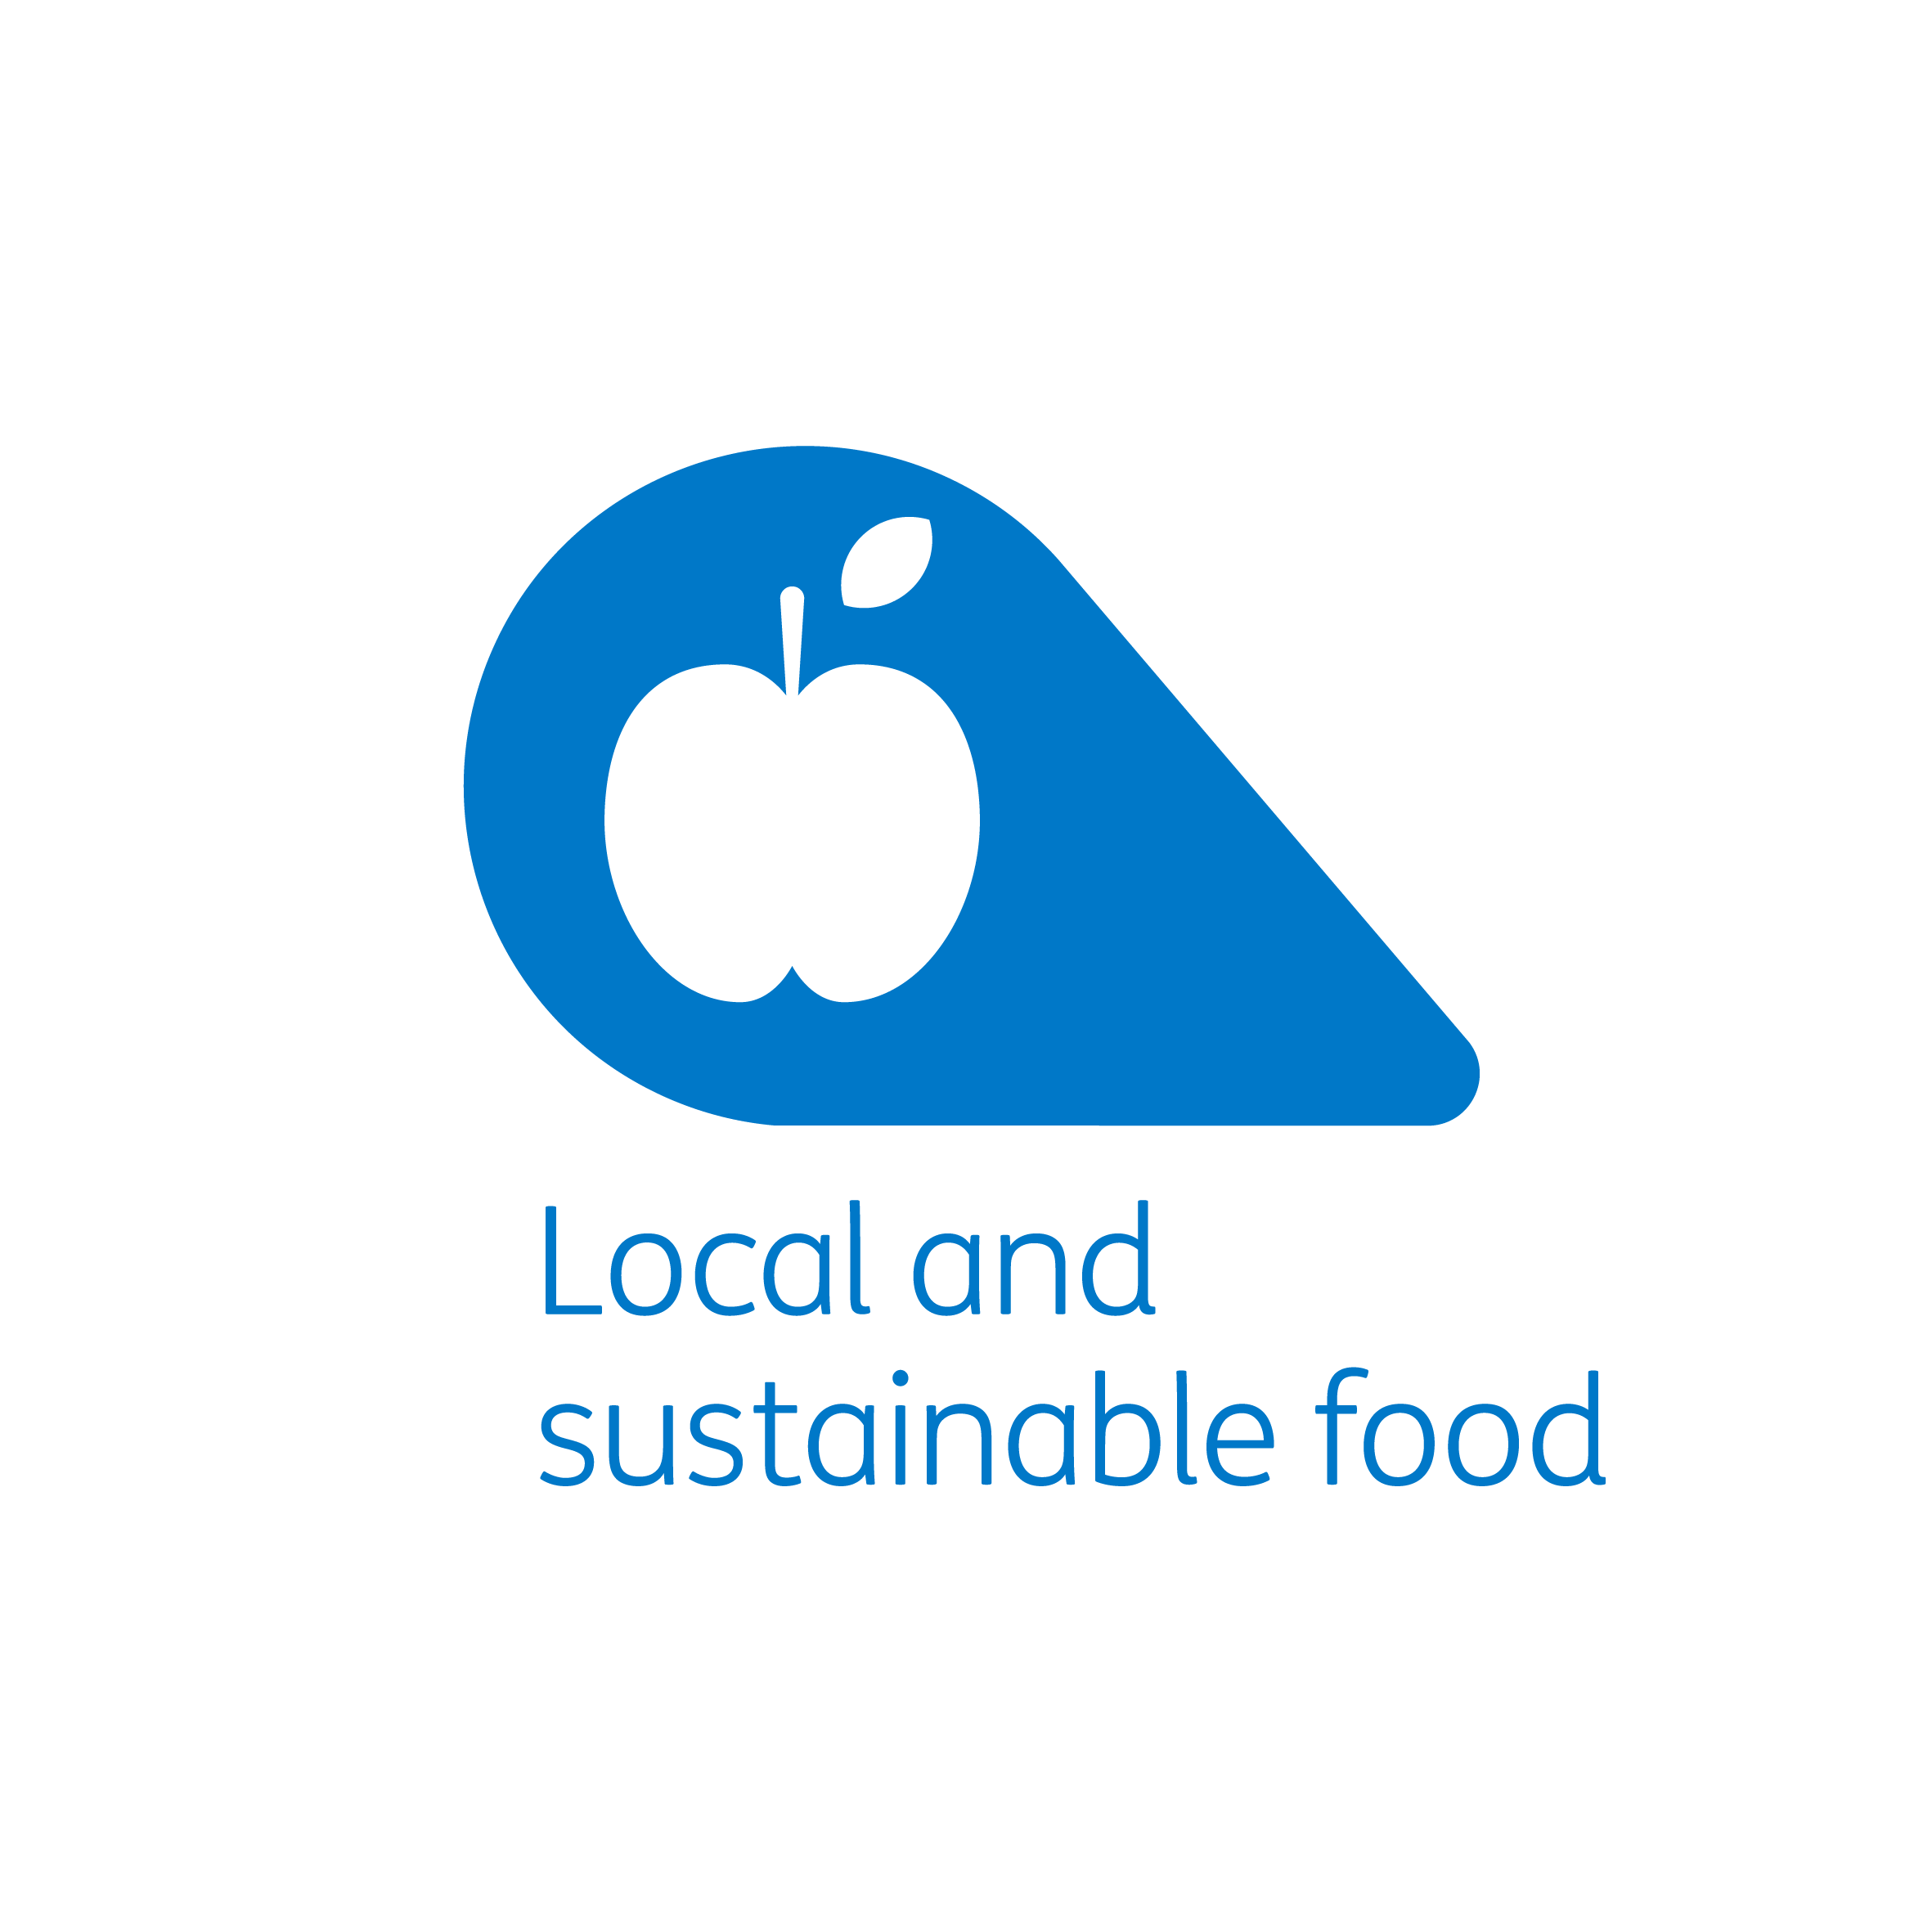 Local and sustainable food petal